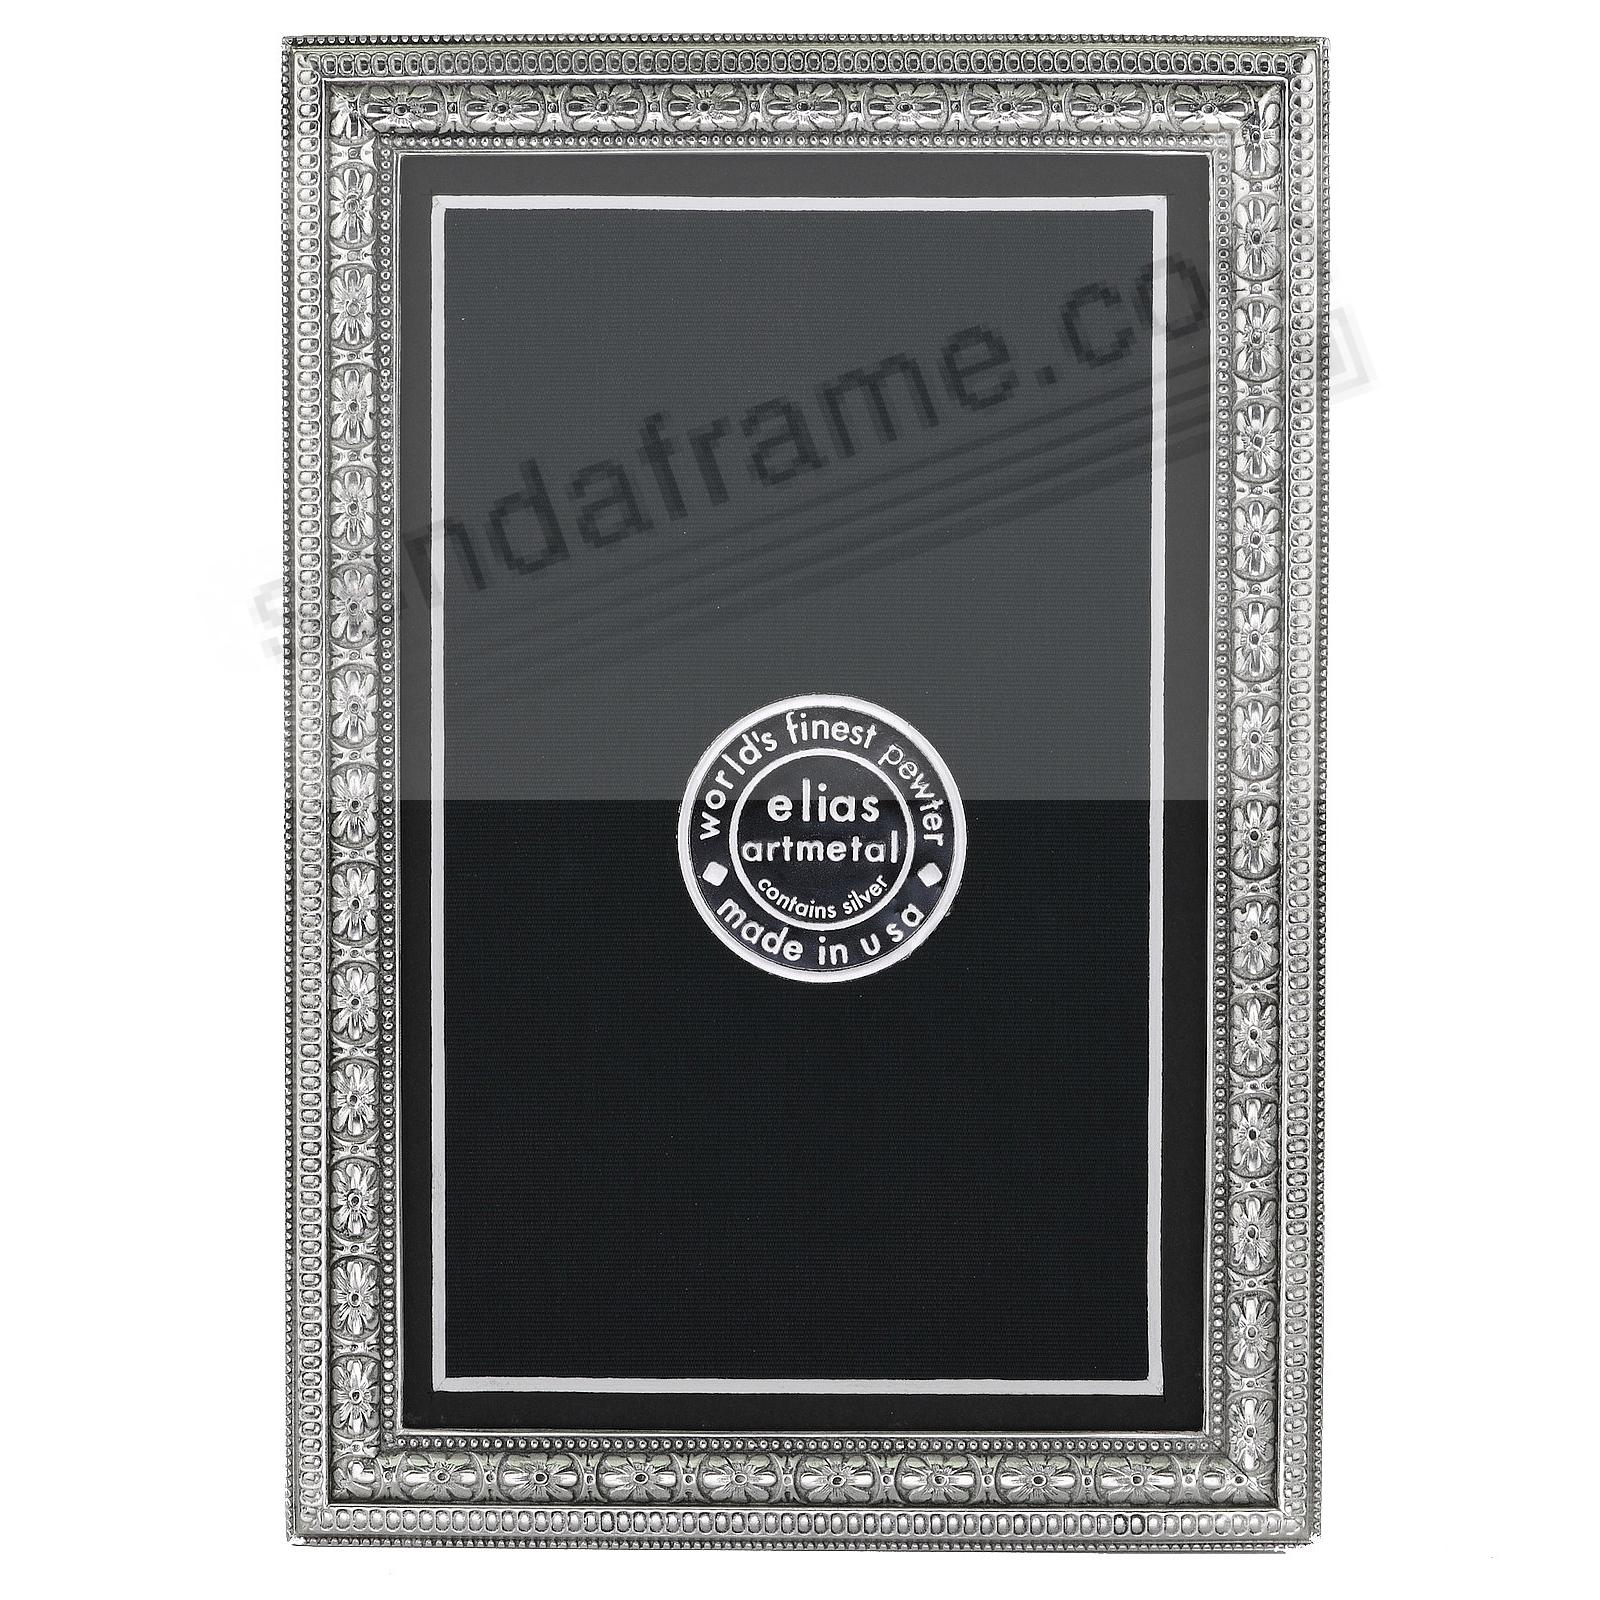 BEADED FLORAL Fine Pewter 4x6/3&frac12;x5&frac12; frame<br>by Elias Artmetal&reg;